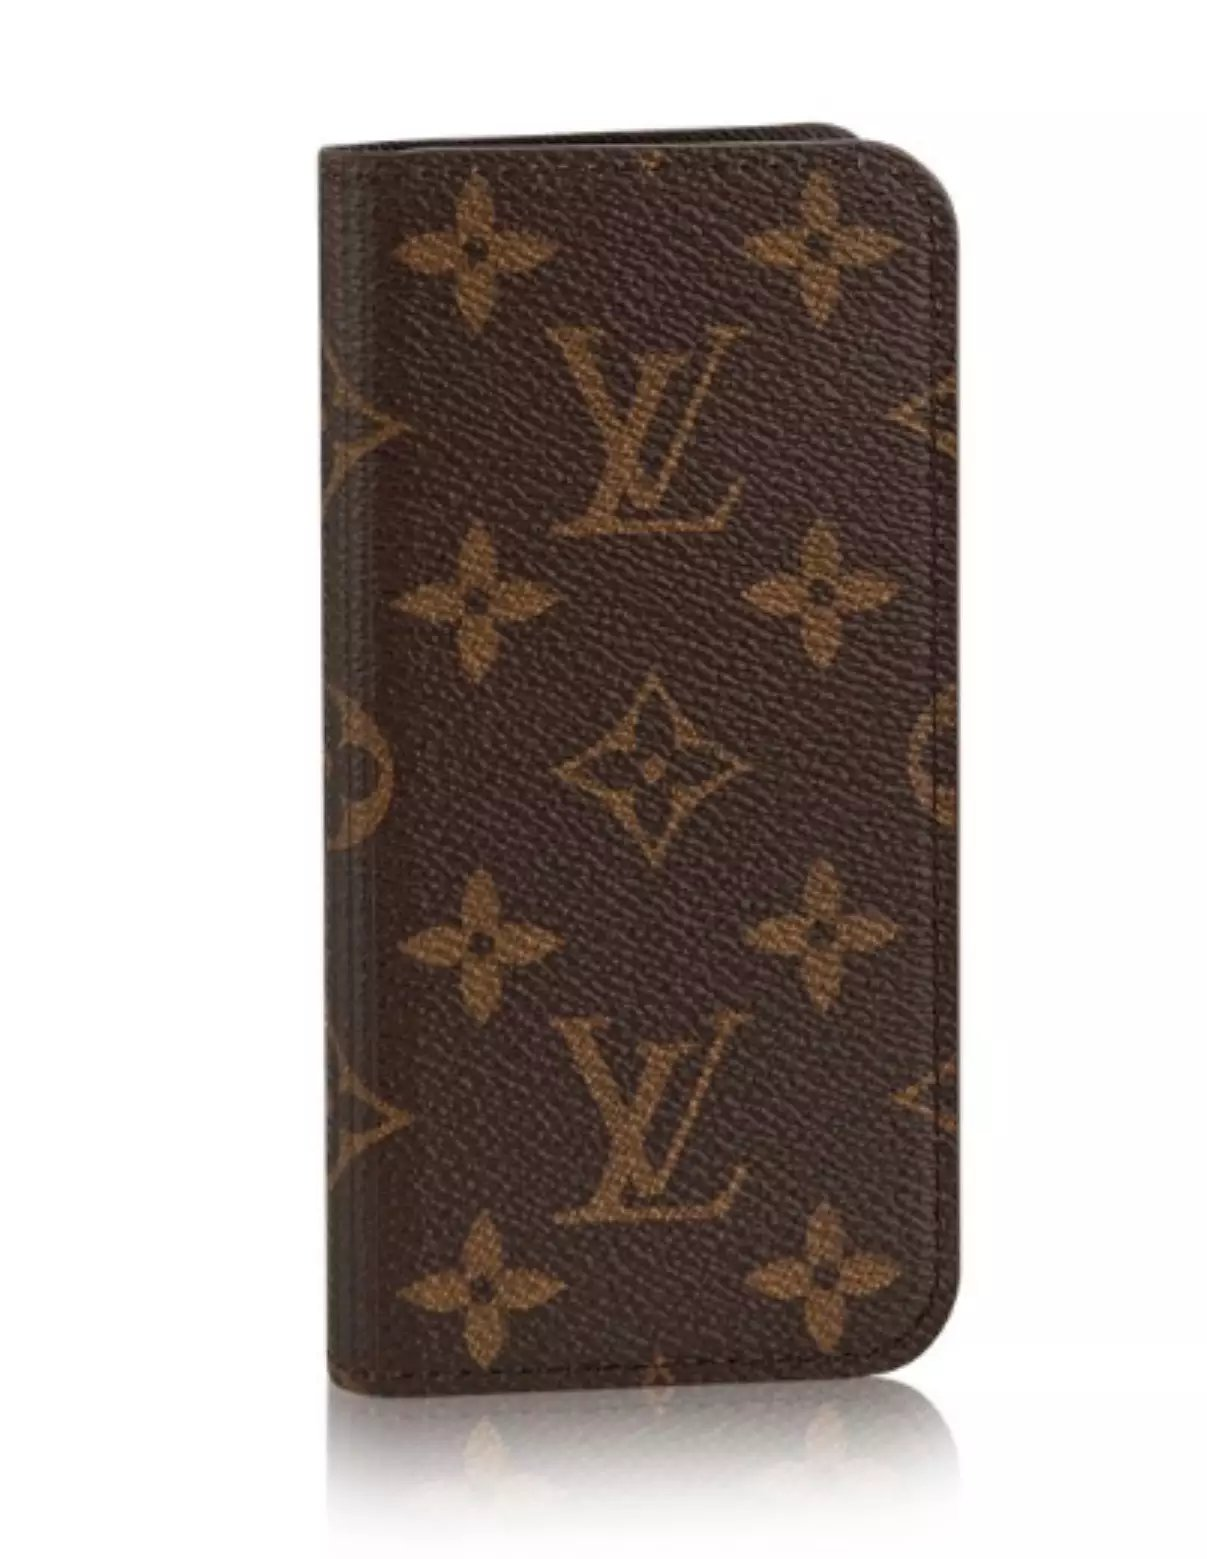 edle iphone hüllen iphone case mit foto Louis Vuitton iphone 8 Plus hüllen iphone hülle machen ca8 Plus E iphone design handy hüllen iphone 8 Plus hutz meine eigene handyhülle iphonne 8 Plus